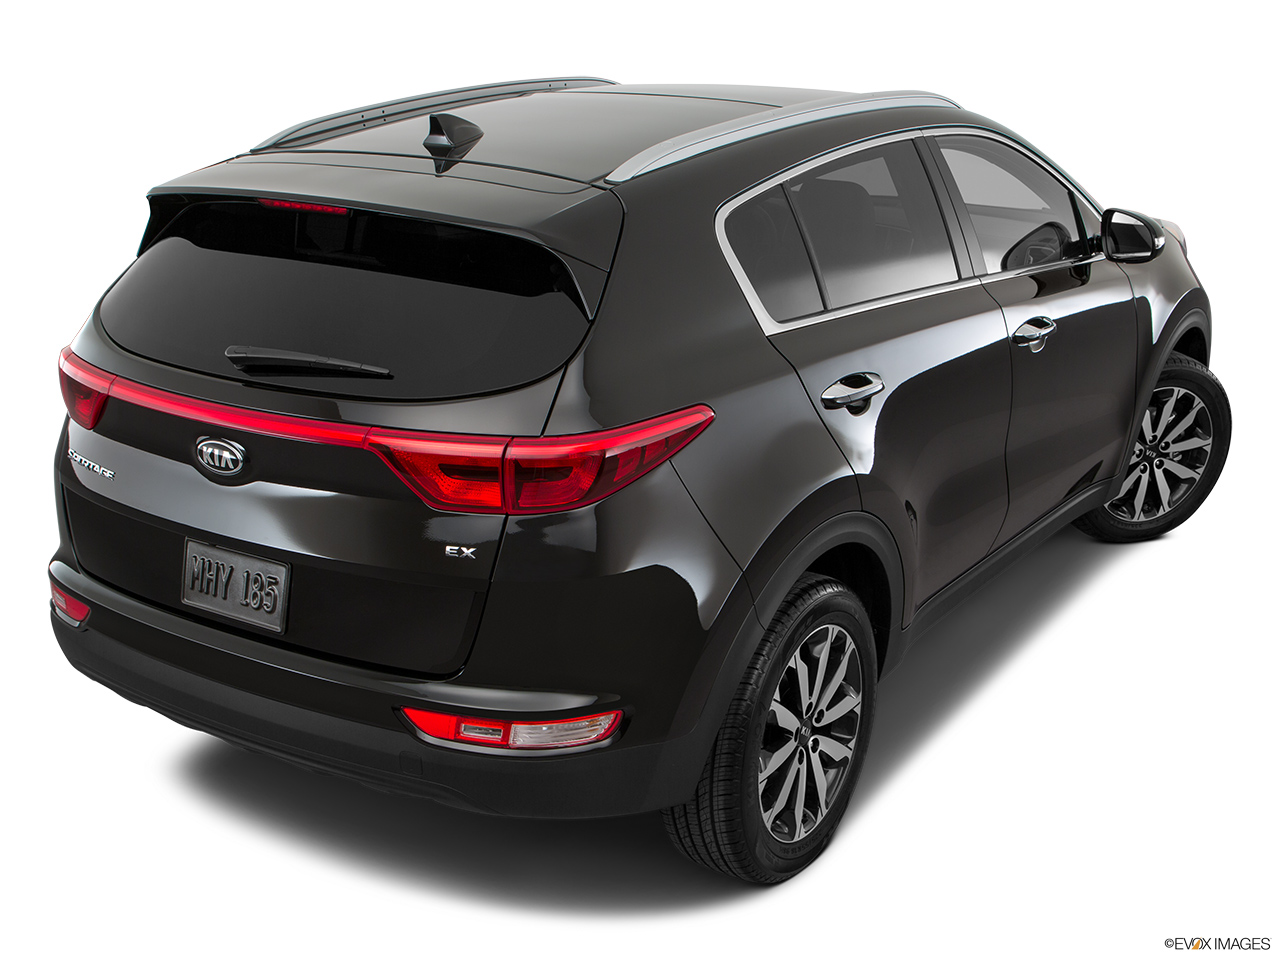 Awd Cars List: Car Pictures List For Kia Sportage 2017 2.4L Top AWD (Oman